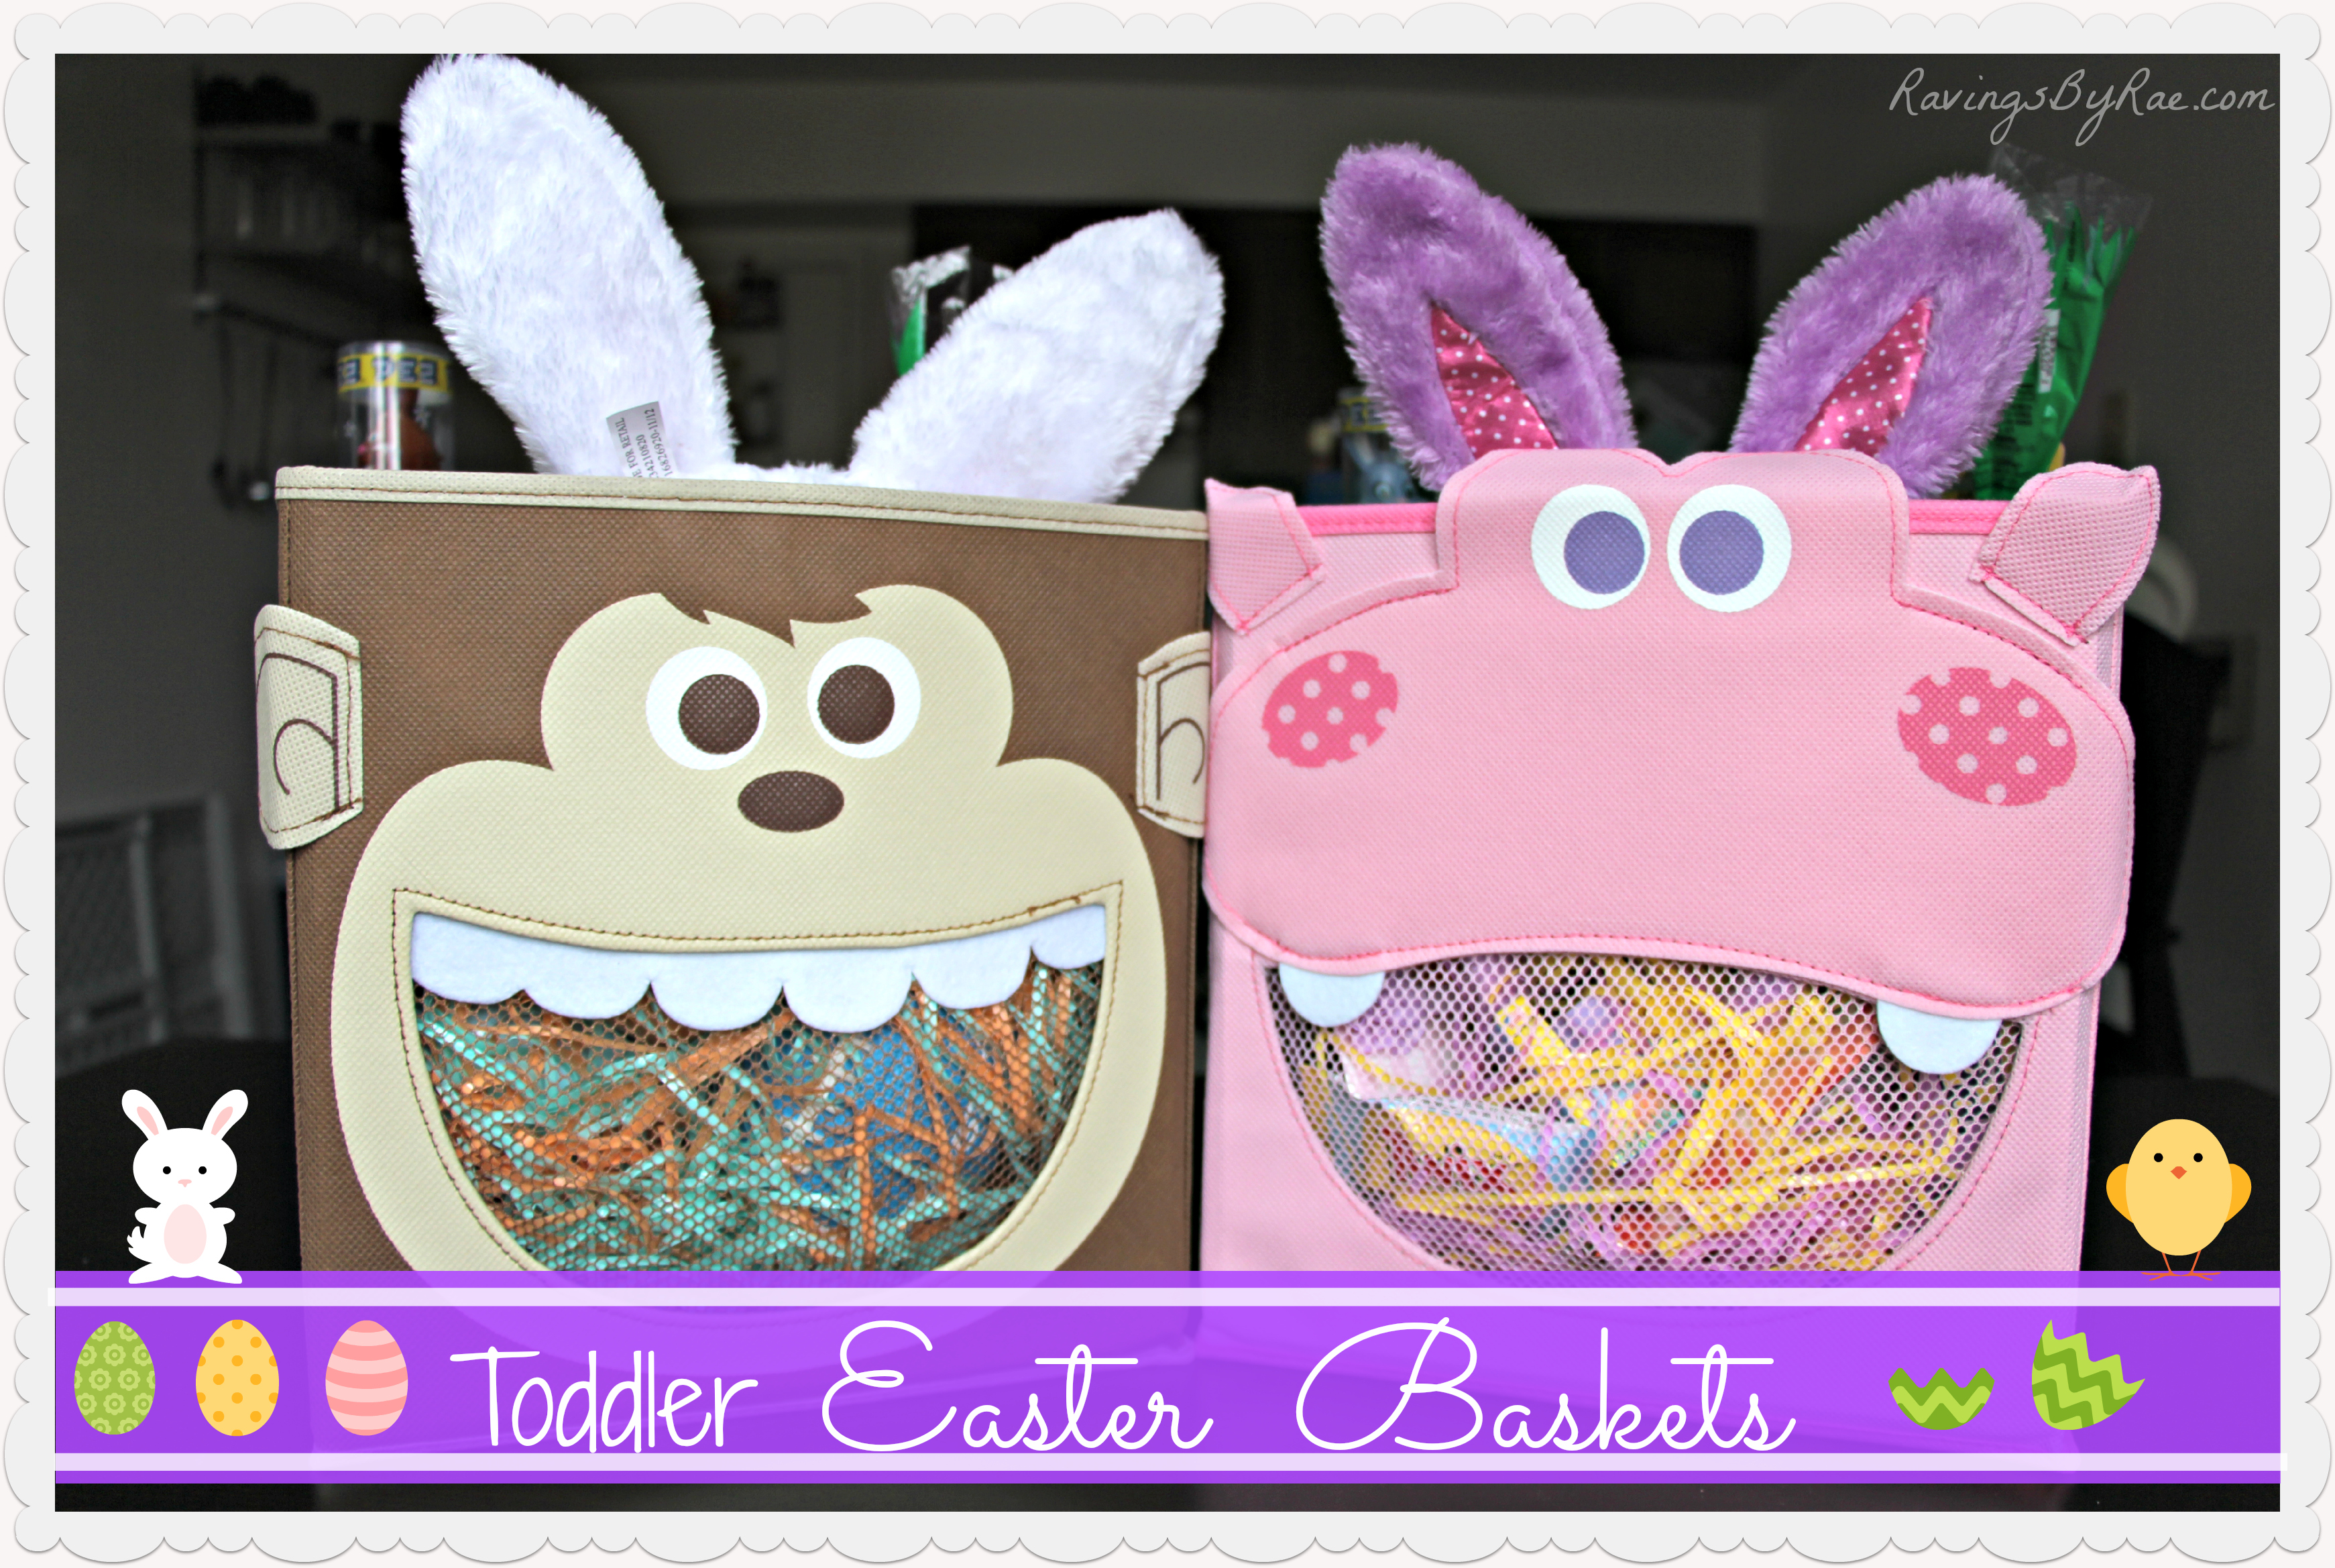 Toddler easter baskets non traditional sarah rae vargas toddler easter baskets 2 negle Choice Image